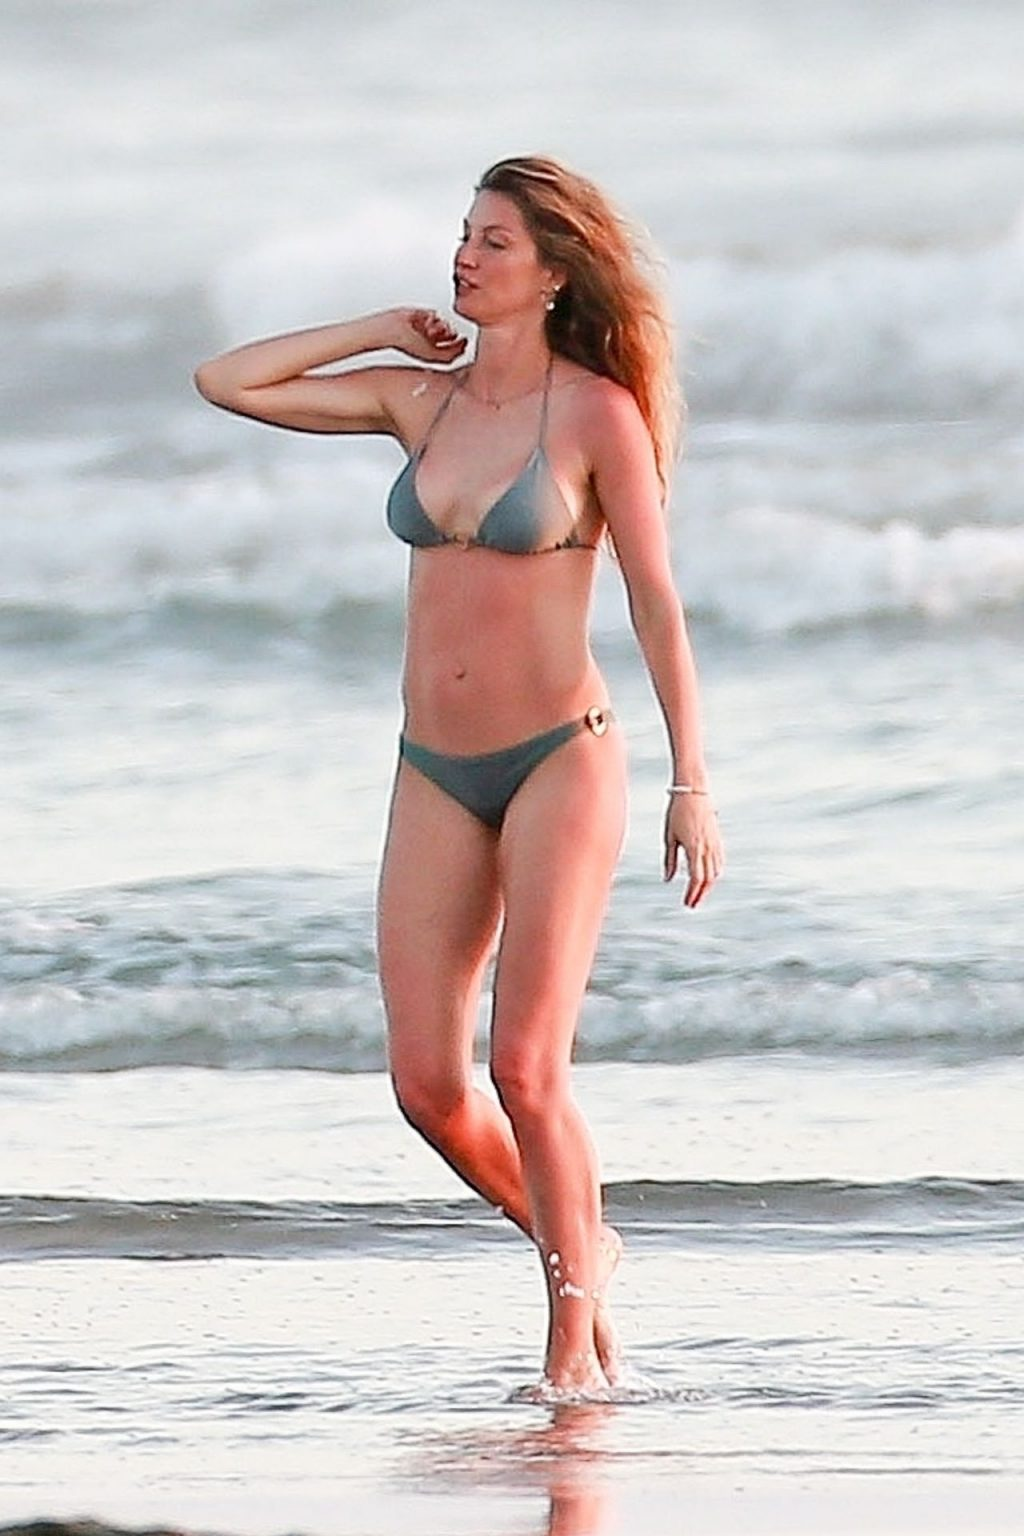 Gisele Bündchen Is Seen Enjoying the Warm Weather in Costa Rica (23 Photos)